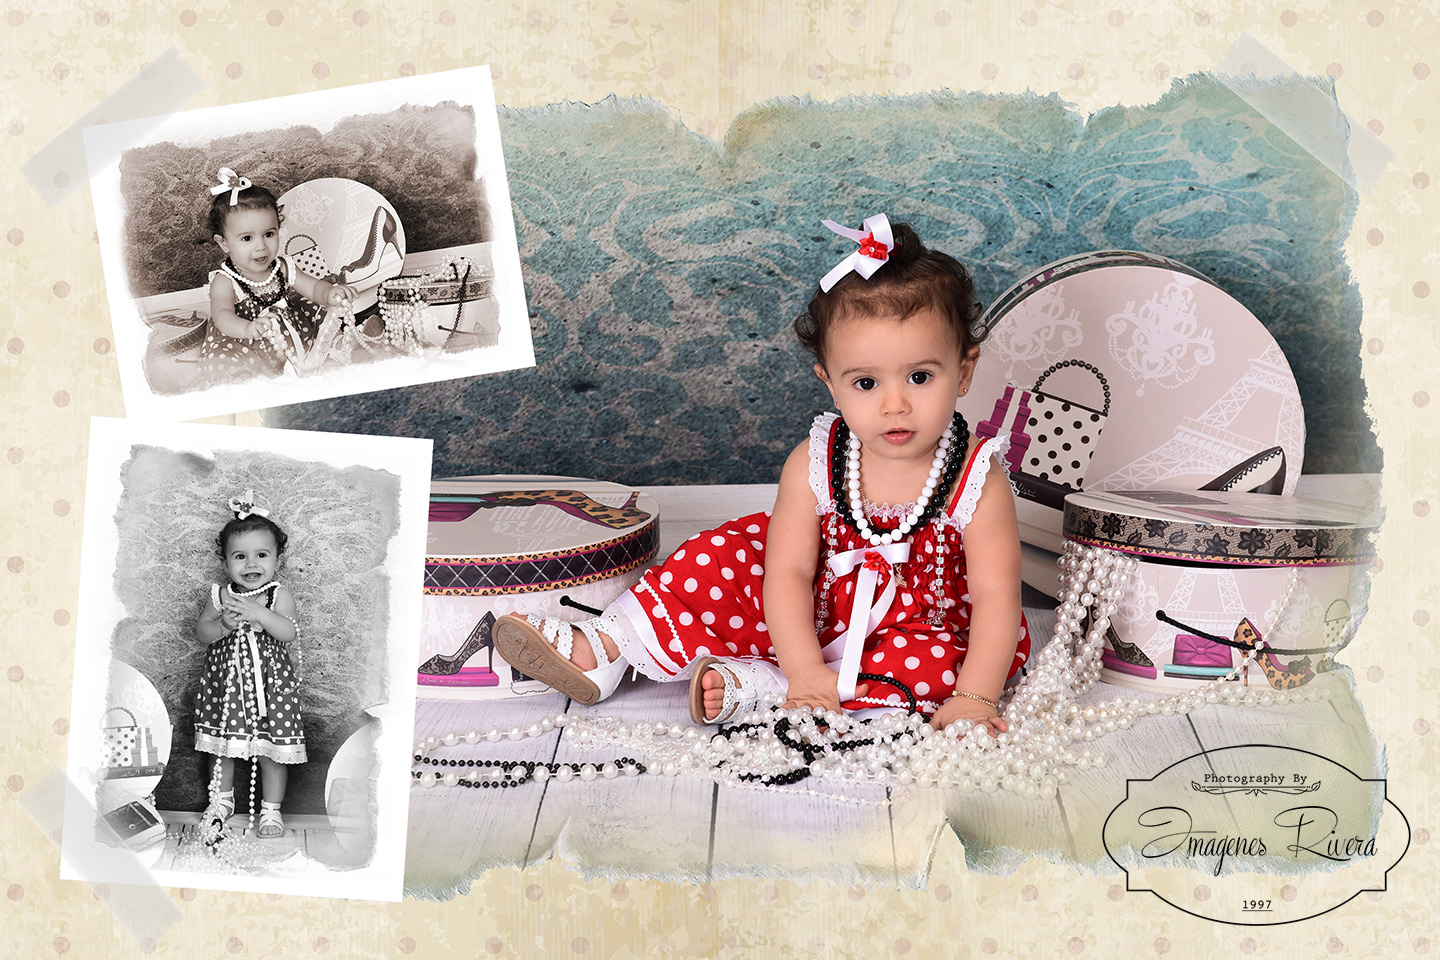 ♥ Danielys is ONE!!!|Miami baby photographer Imagenes Rivera ♥